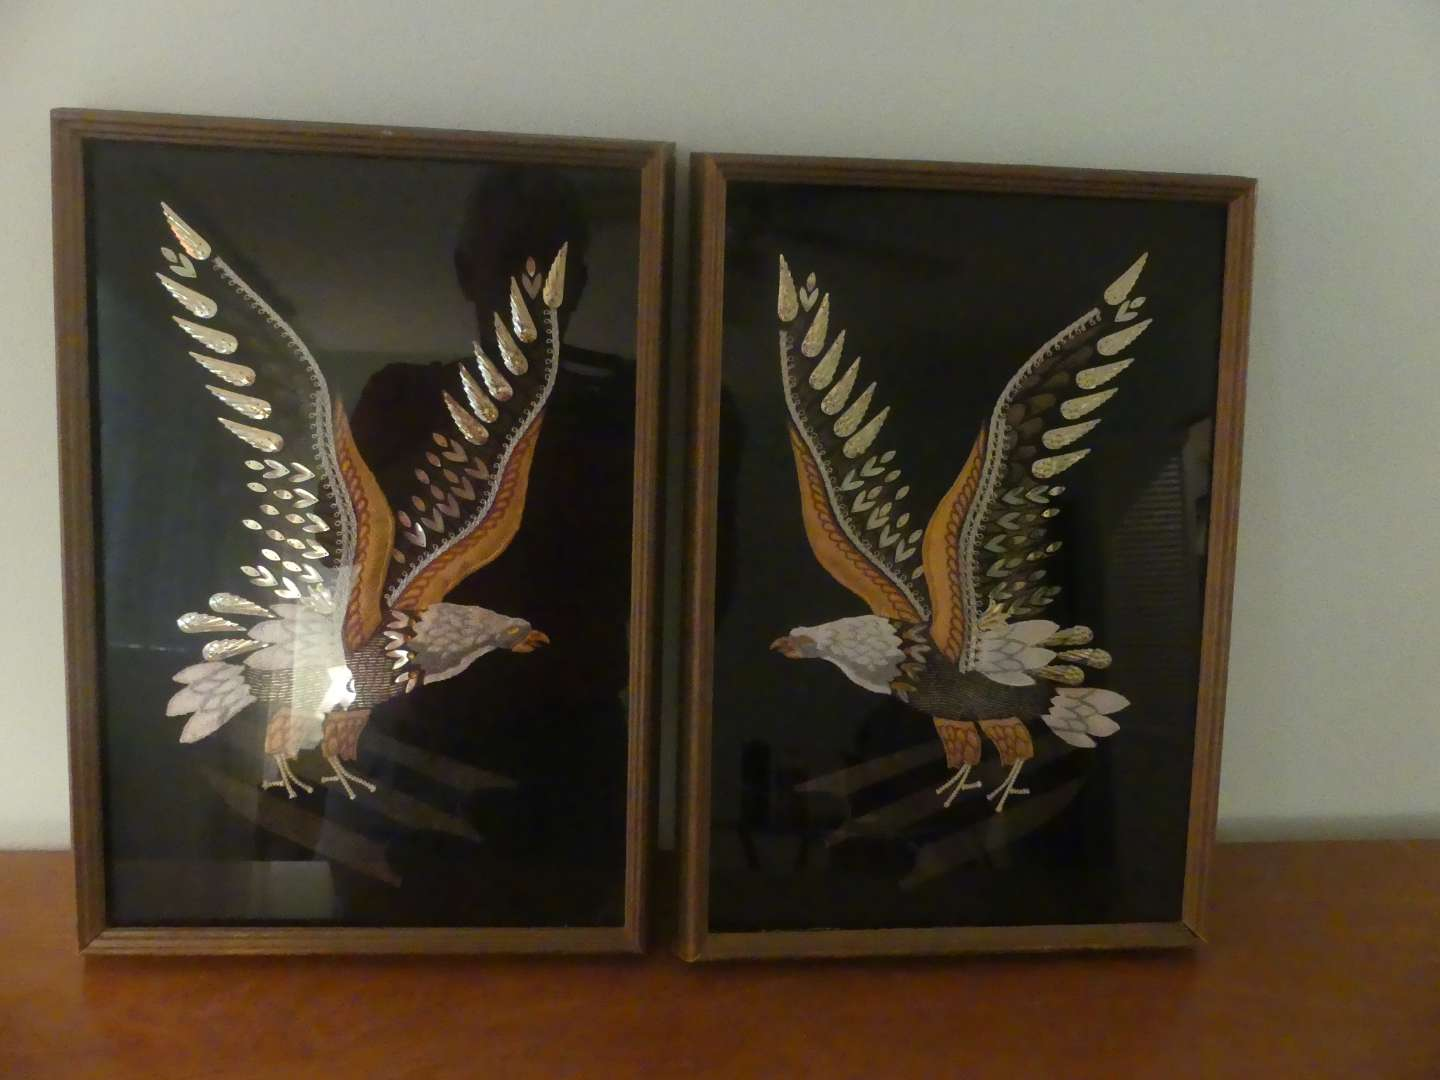 Lot #96 Pair of One-of-a-Kind Framed Stitched/Beaded/Decorated Eagle Artwork